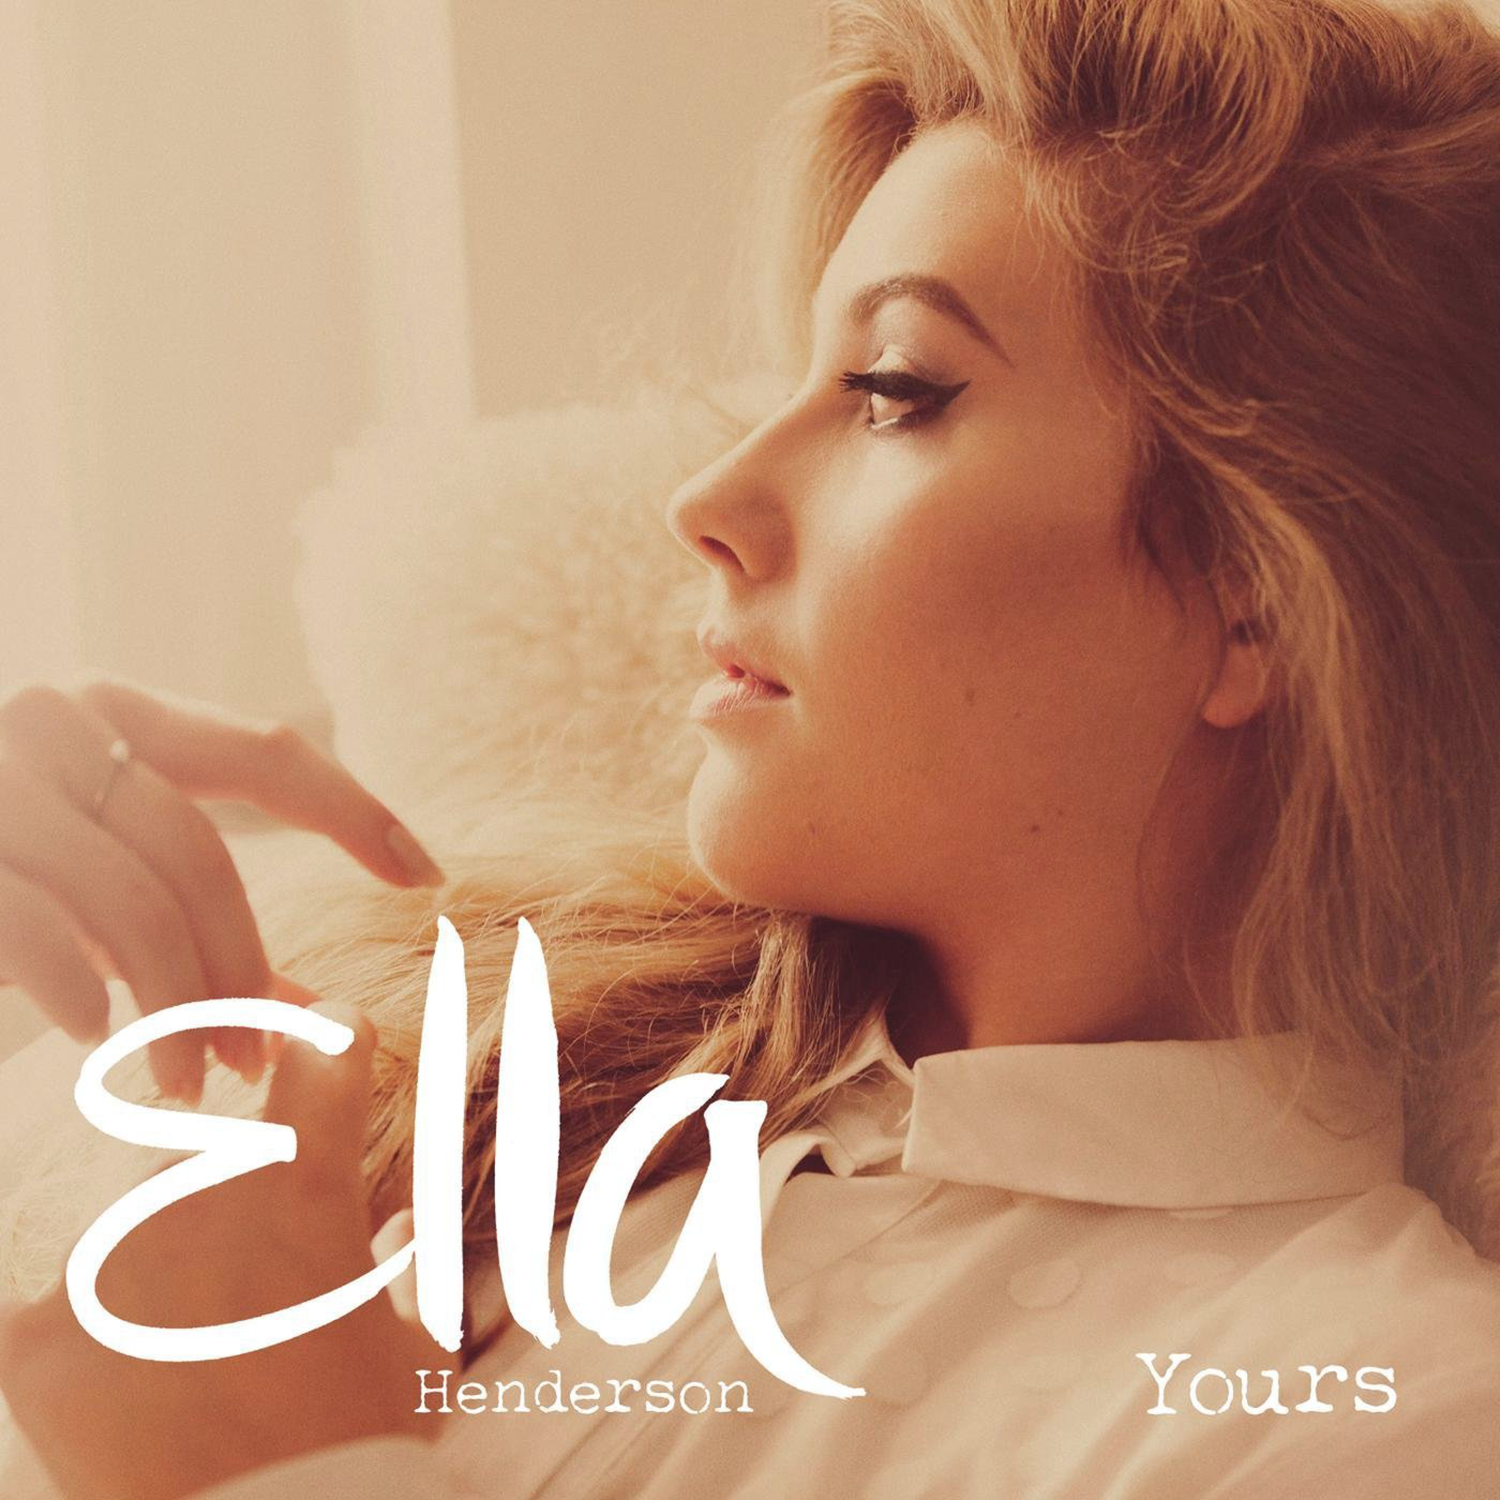 Ella Henderson – Yours – Free Track on Google Play